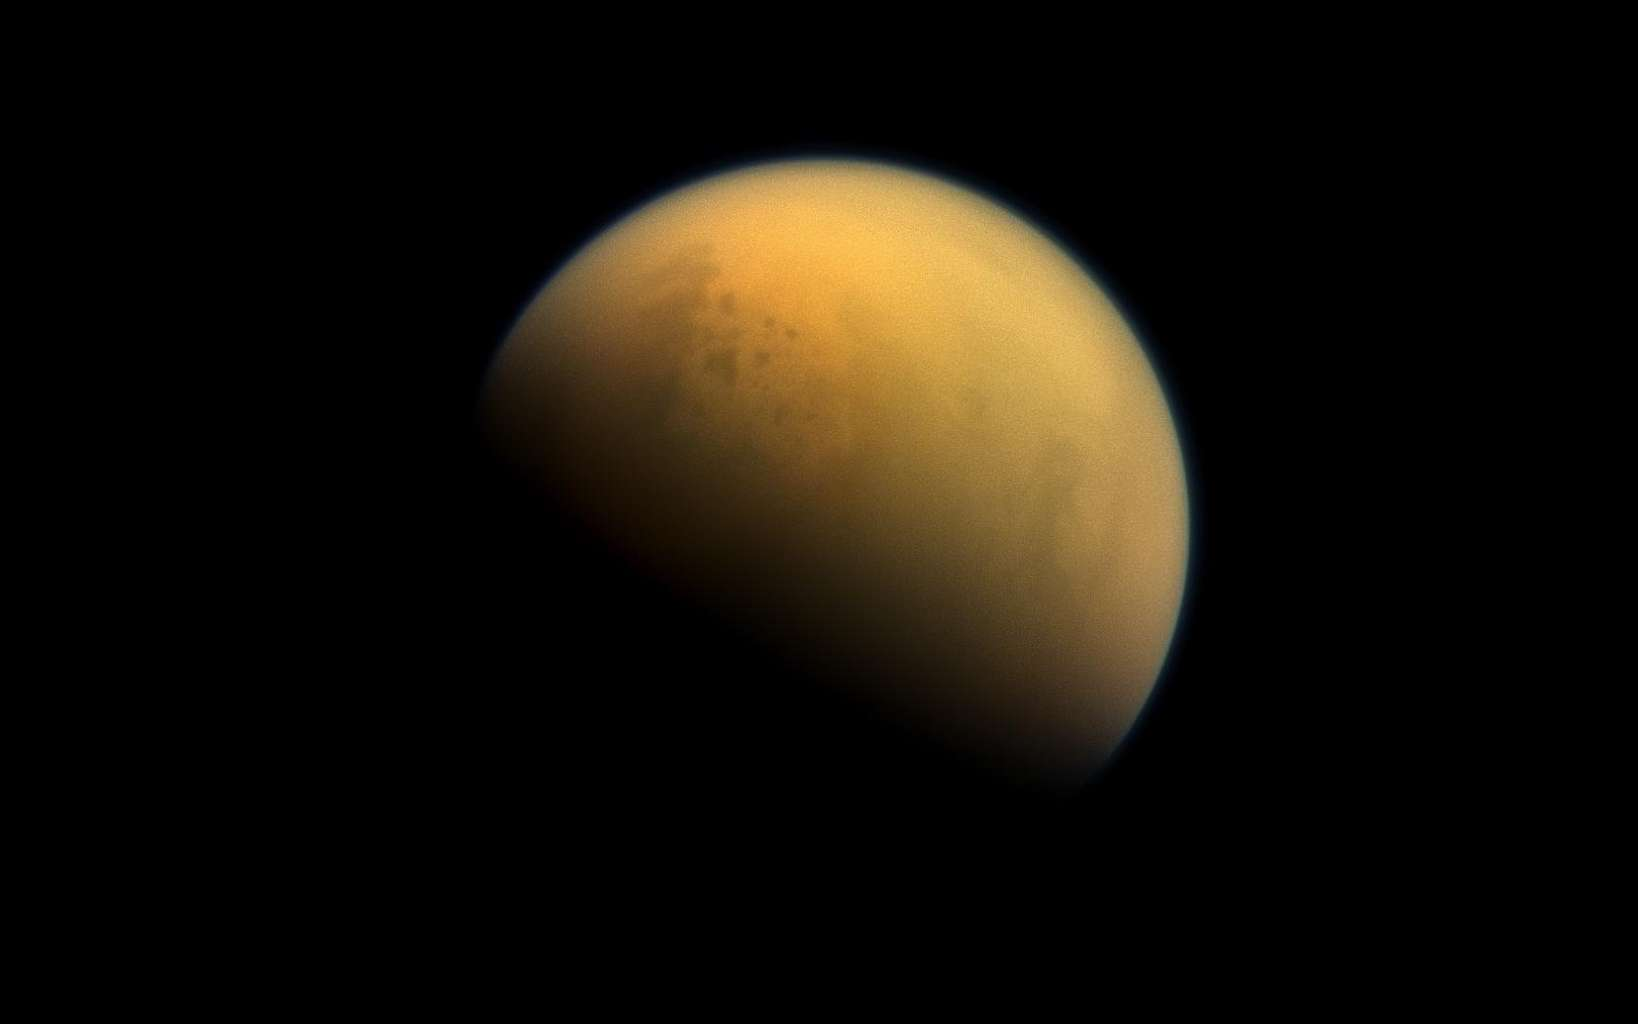 Une molécule prébiotique a été découverte dans l'atmosphère de Titan. Ici, l'atmosphère dense et brumeuse de Titan photographiée par la sonde Cassini. © Nasa, JPL-Caltech, Space Science Institute